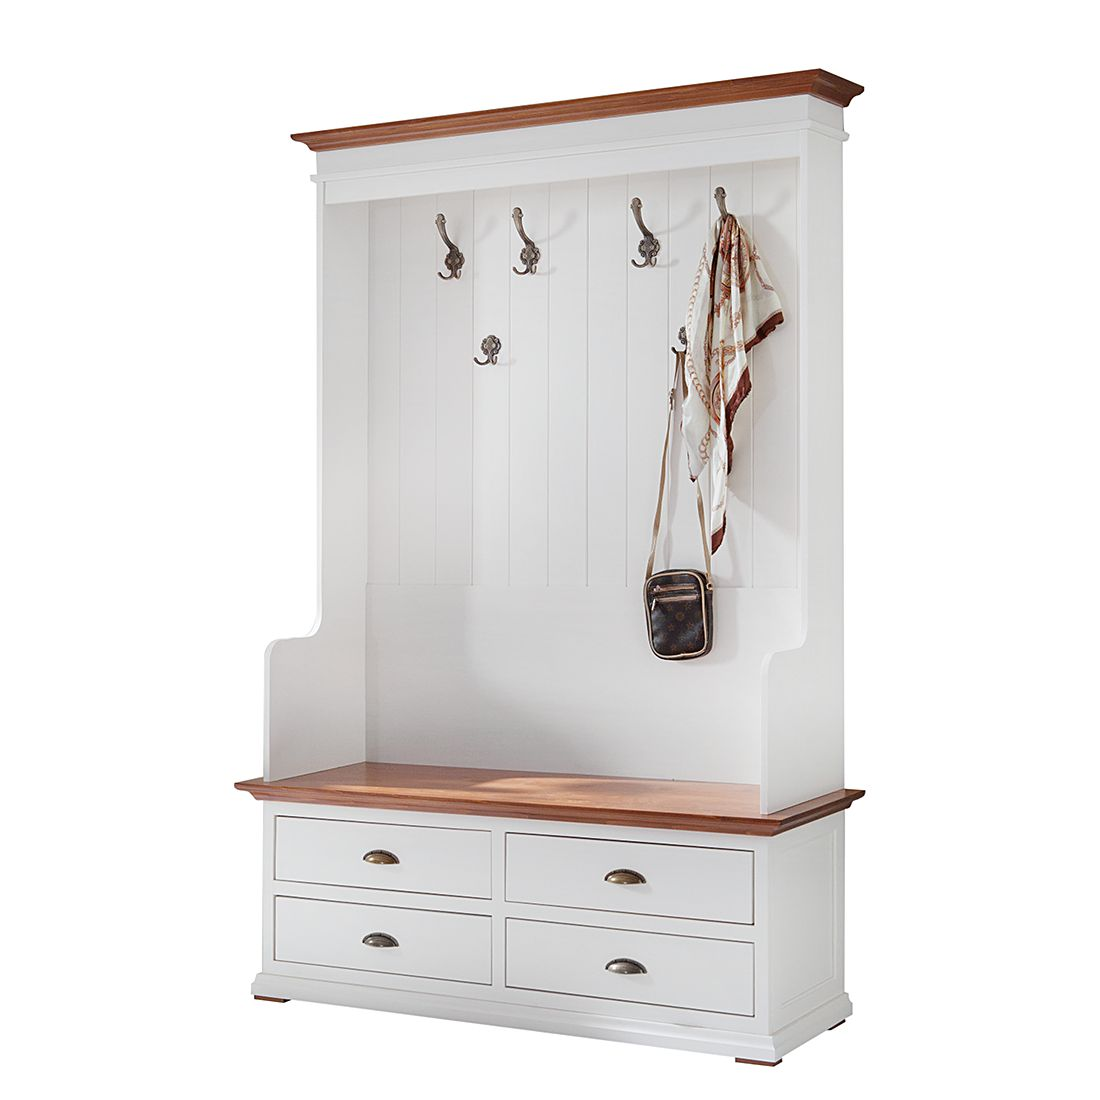 garderobe vivienne 2 teilig landhaus classic g nstig online kaufen. Black Bedroom Furniture Sets. Home Design Ideas